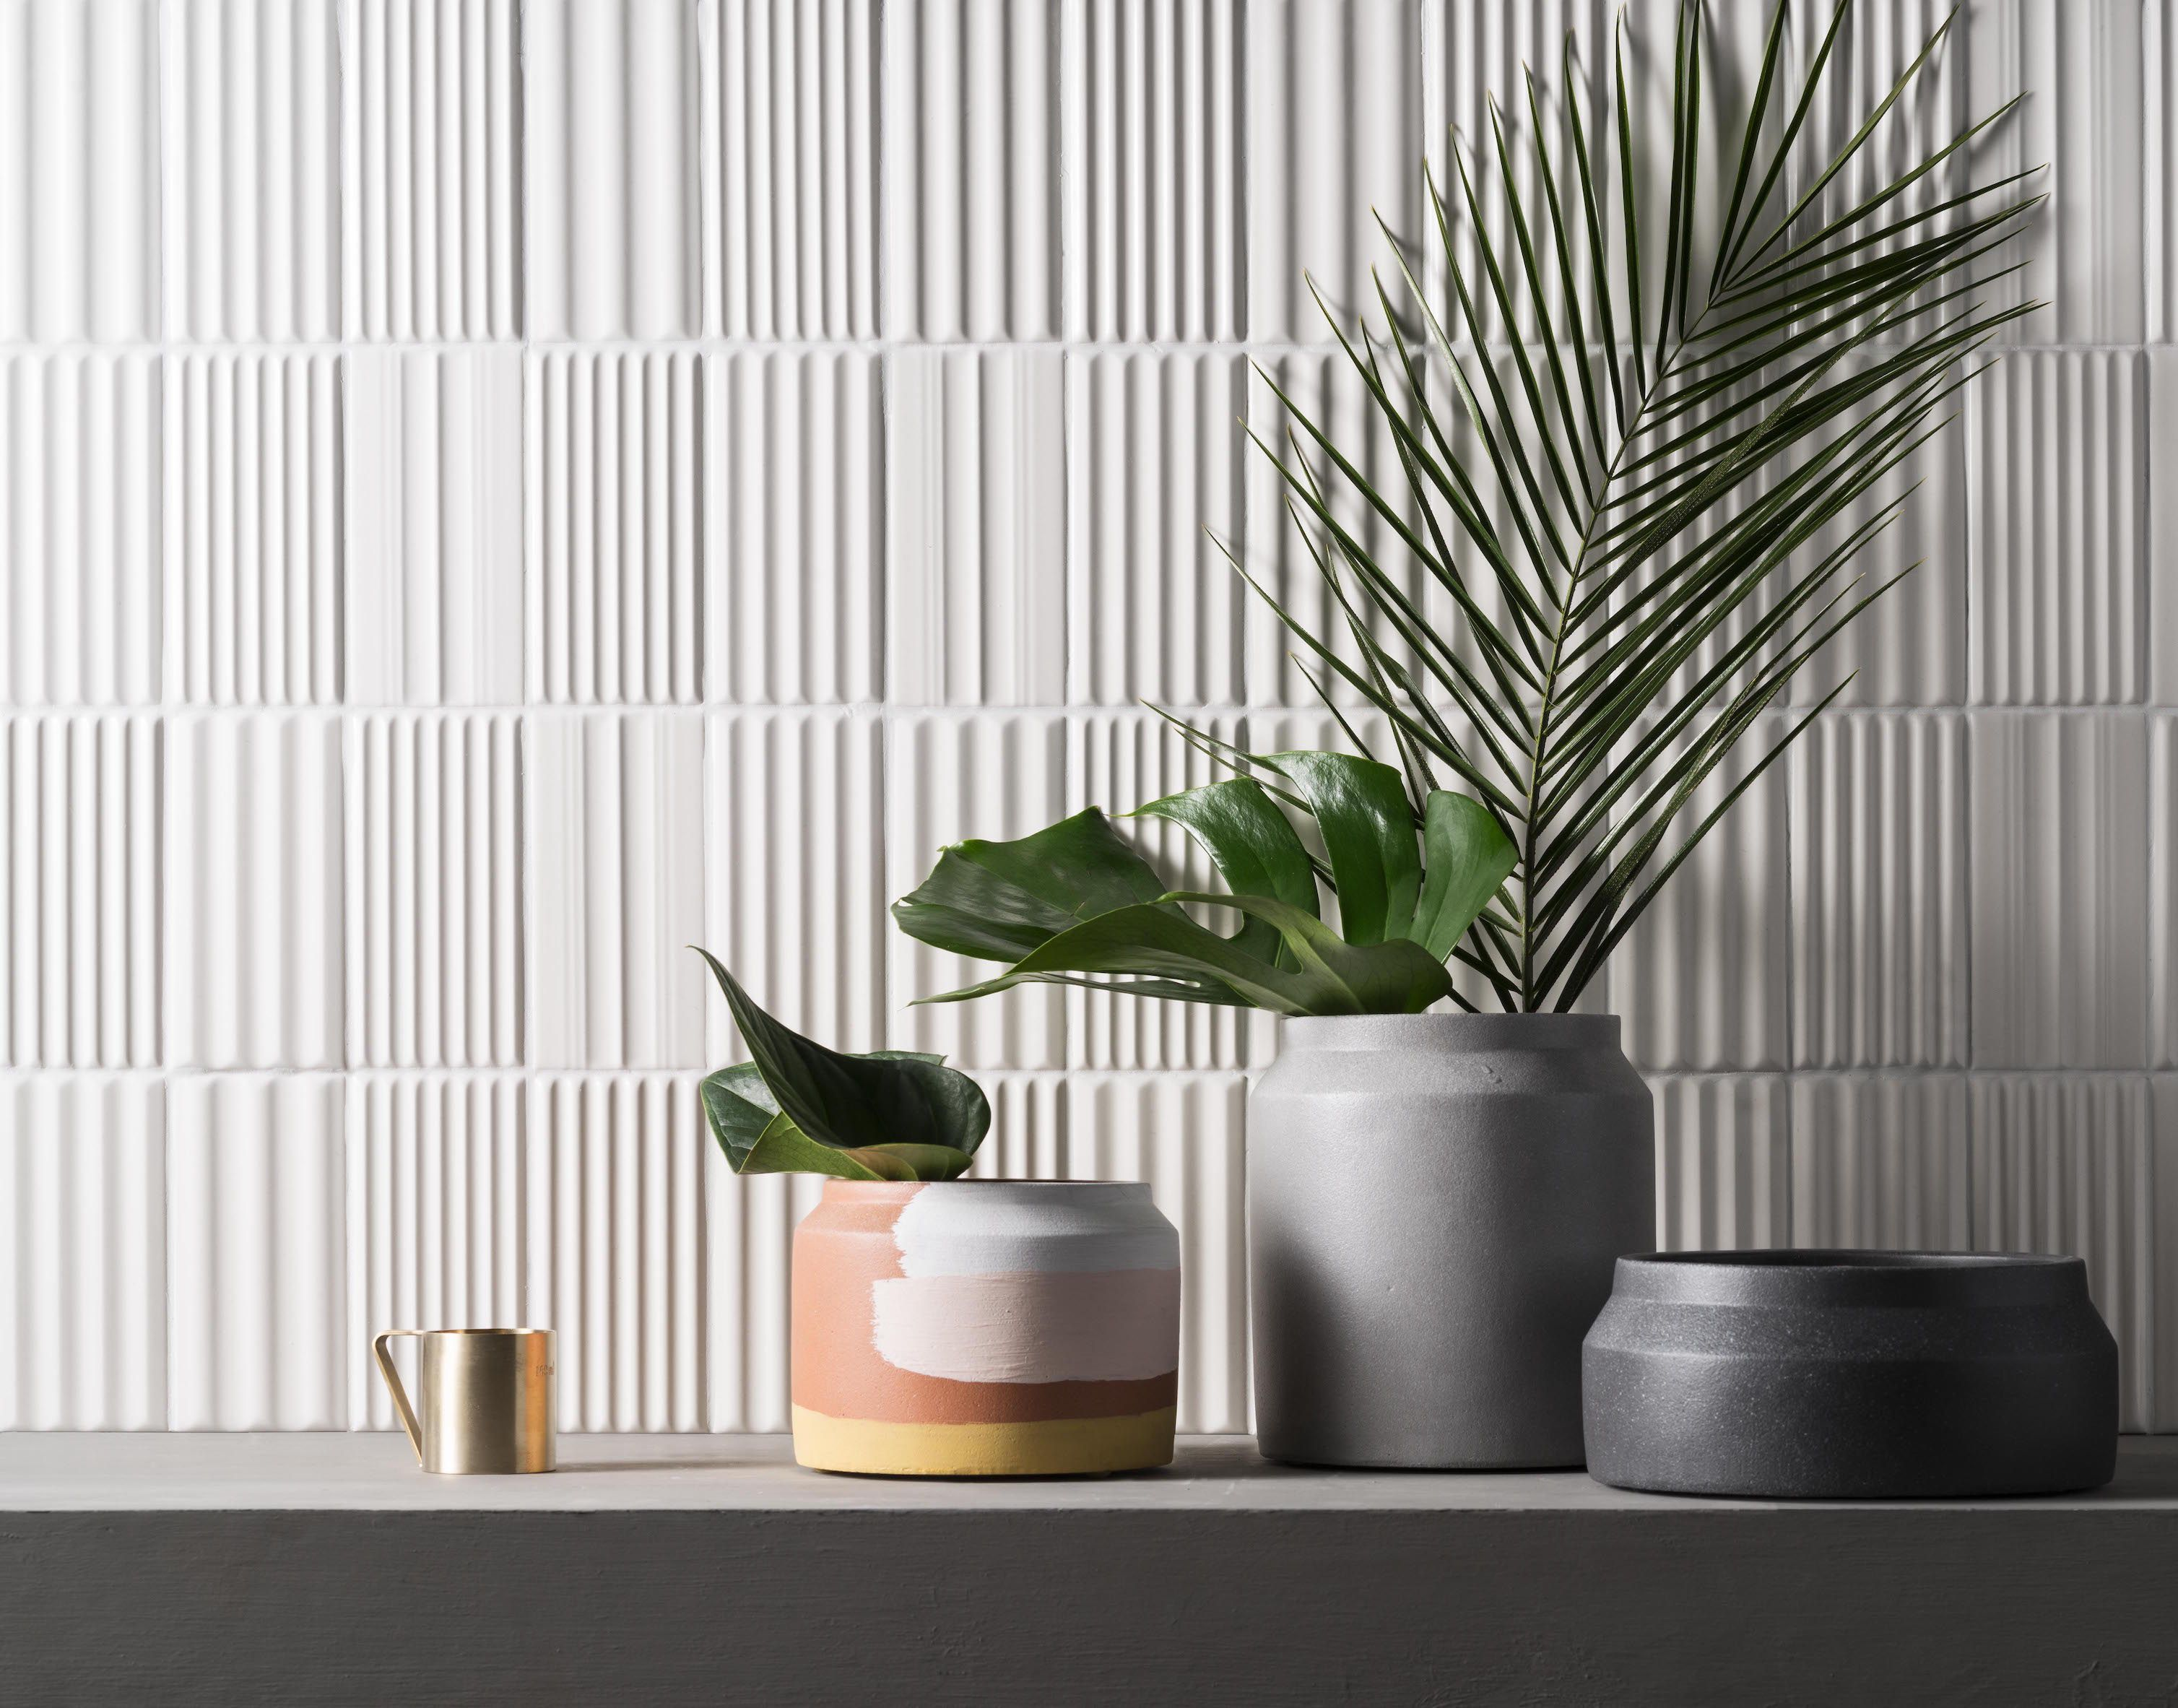 17 Stunning Ceramic Tile Products Every Architect Should Know